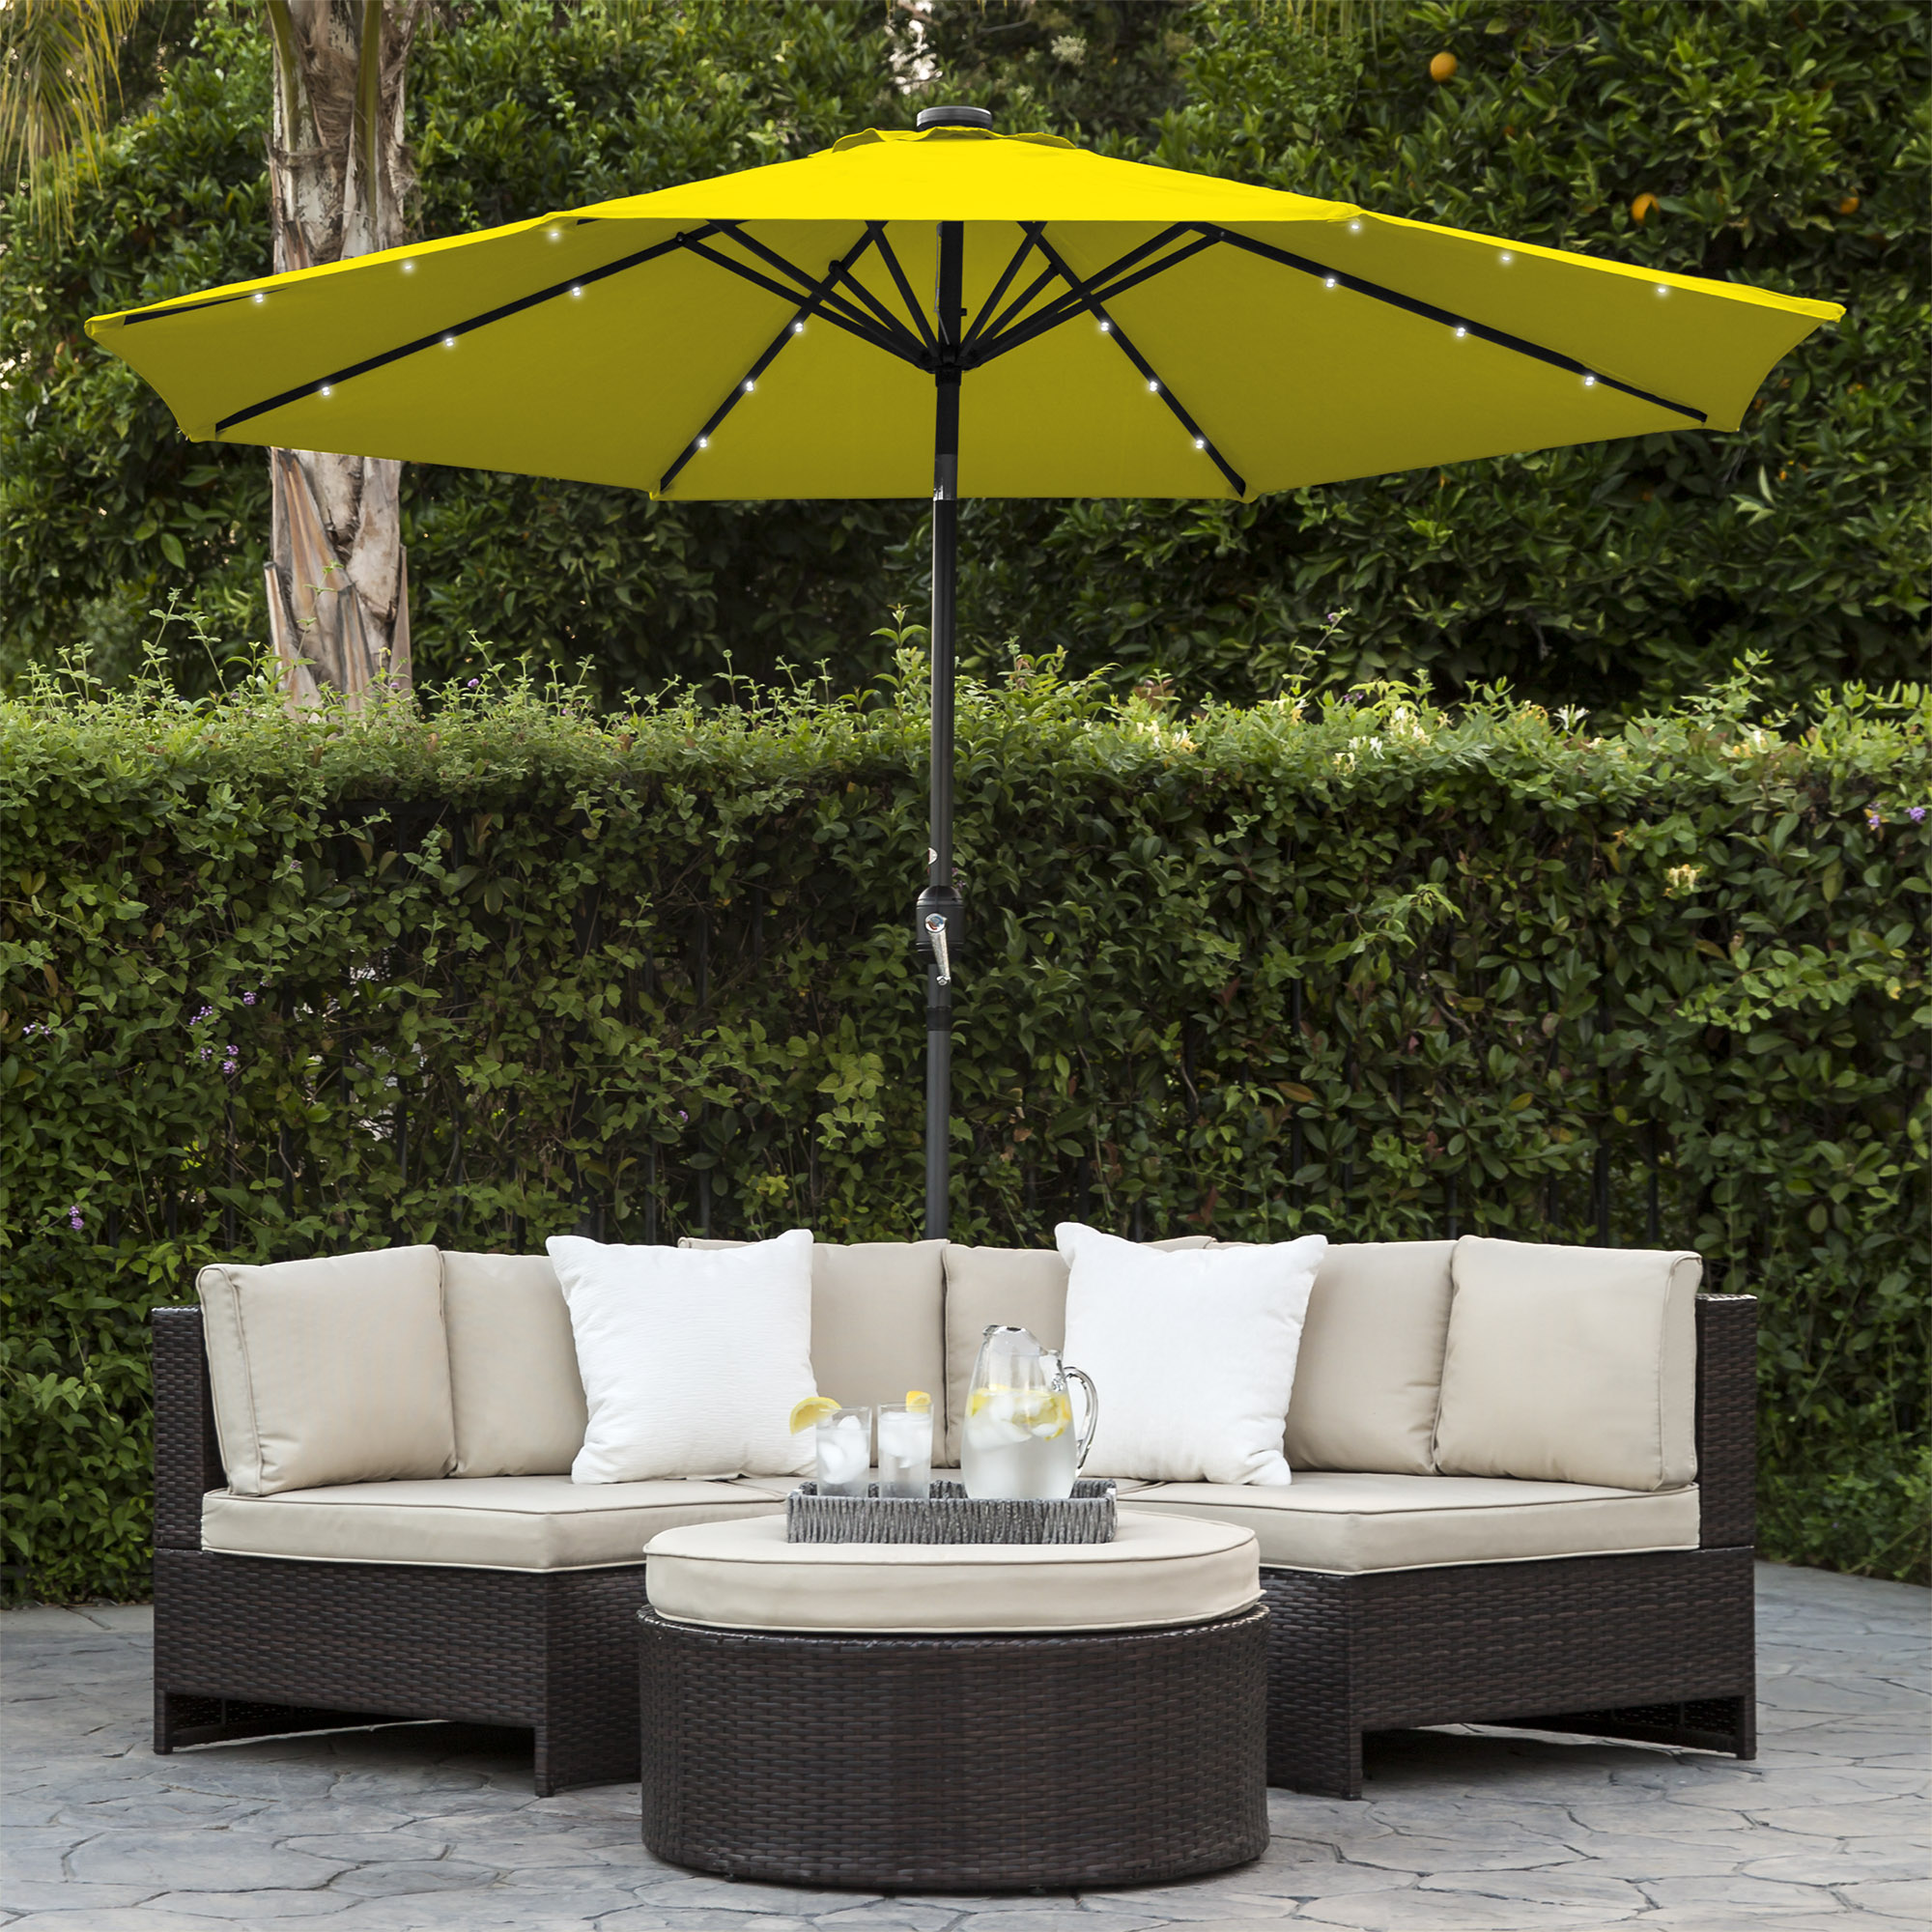 BCP-10ft-Solar-LED-Lighted-Patio-Umbrella-w-Tilt-Adjustment-Fade-Resistance thumbnail 78